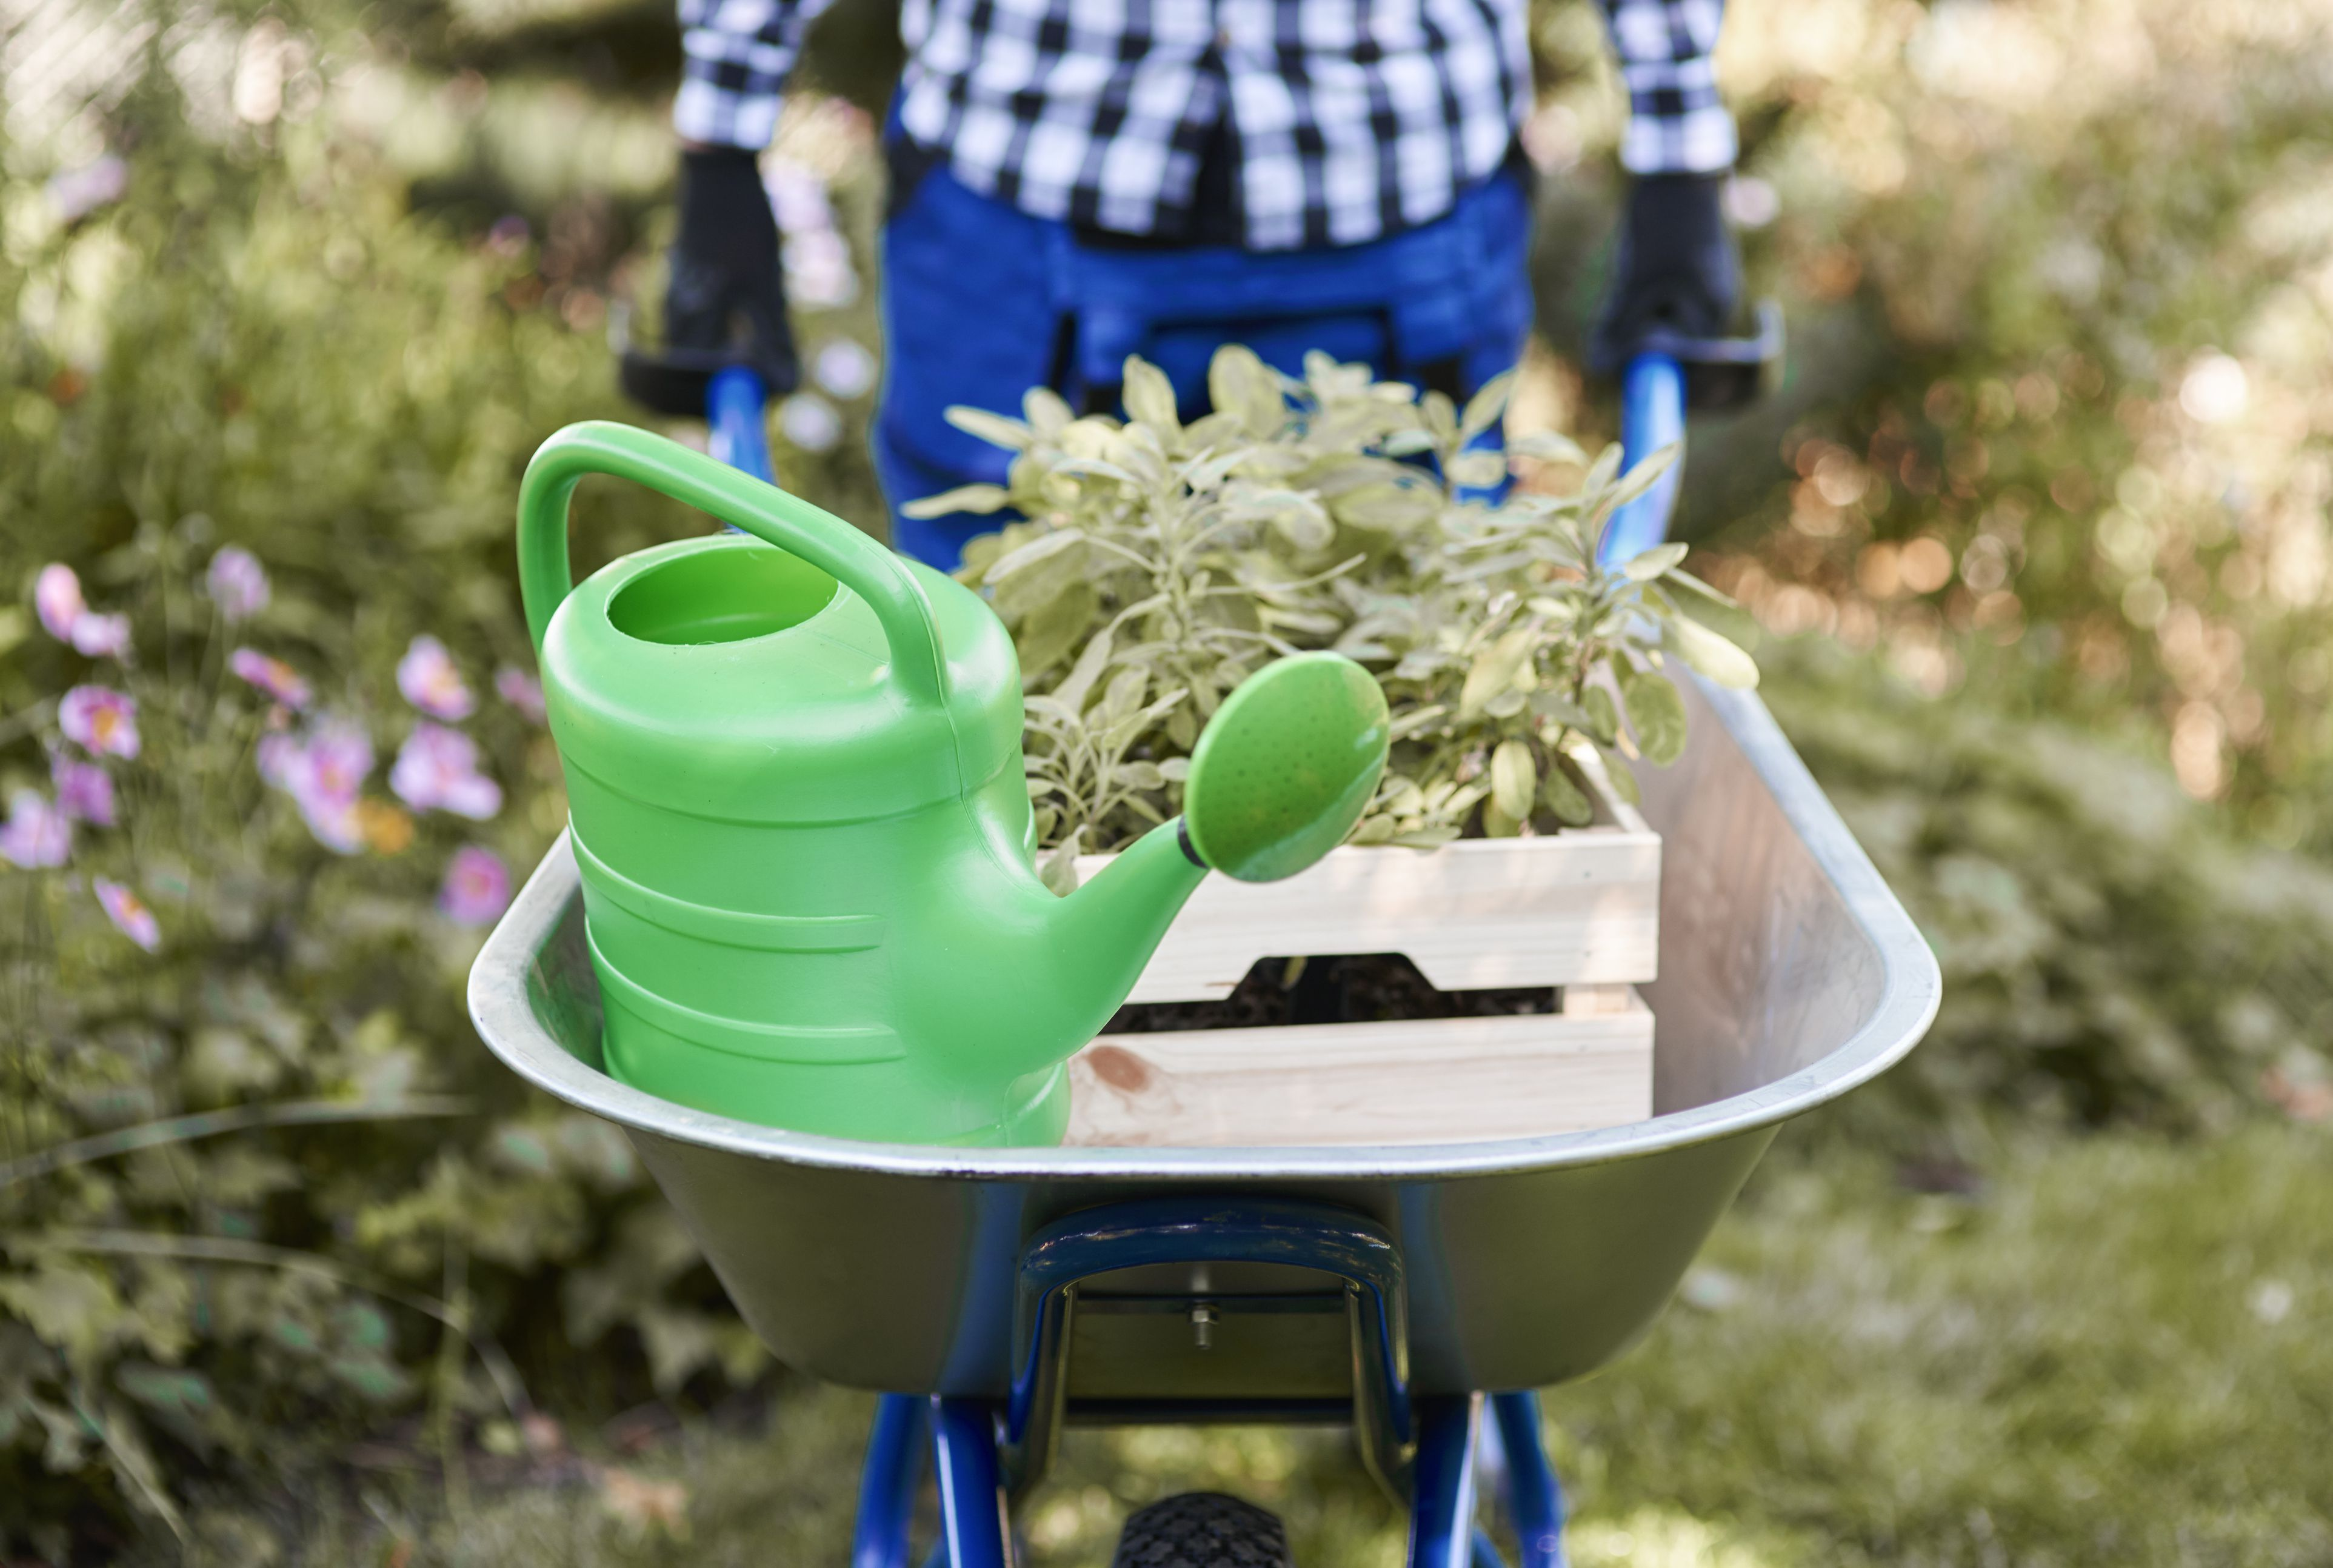 The 8 Best Watering Cans of 2020 Watering Cans Fun For House Plants on watering plants inside, sprinklers for house plants, accessories for house plants, watering plants with soda, self watering plants, watering can watering plants, leaves for house plants, sink hose for watering plants, water plants, watering globes for indoor plants, watering sticks for plants, vacation watering system for plants, bedroom decorating with plants, baskets for house plants, drip irrigation for house plants, hand watering plants, man watering plants, watering plants with milk jugs, metal watering can for plants,